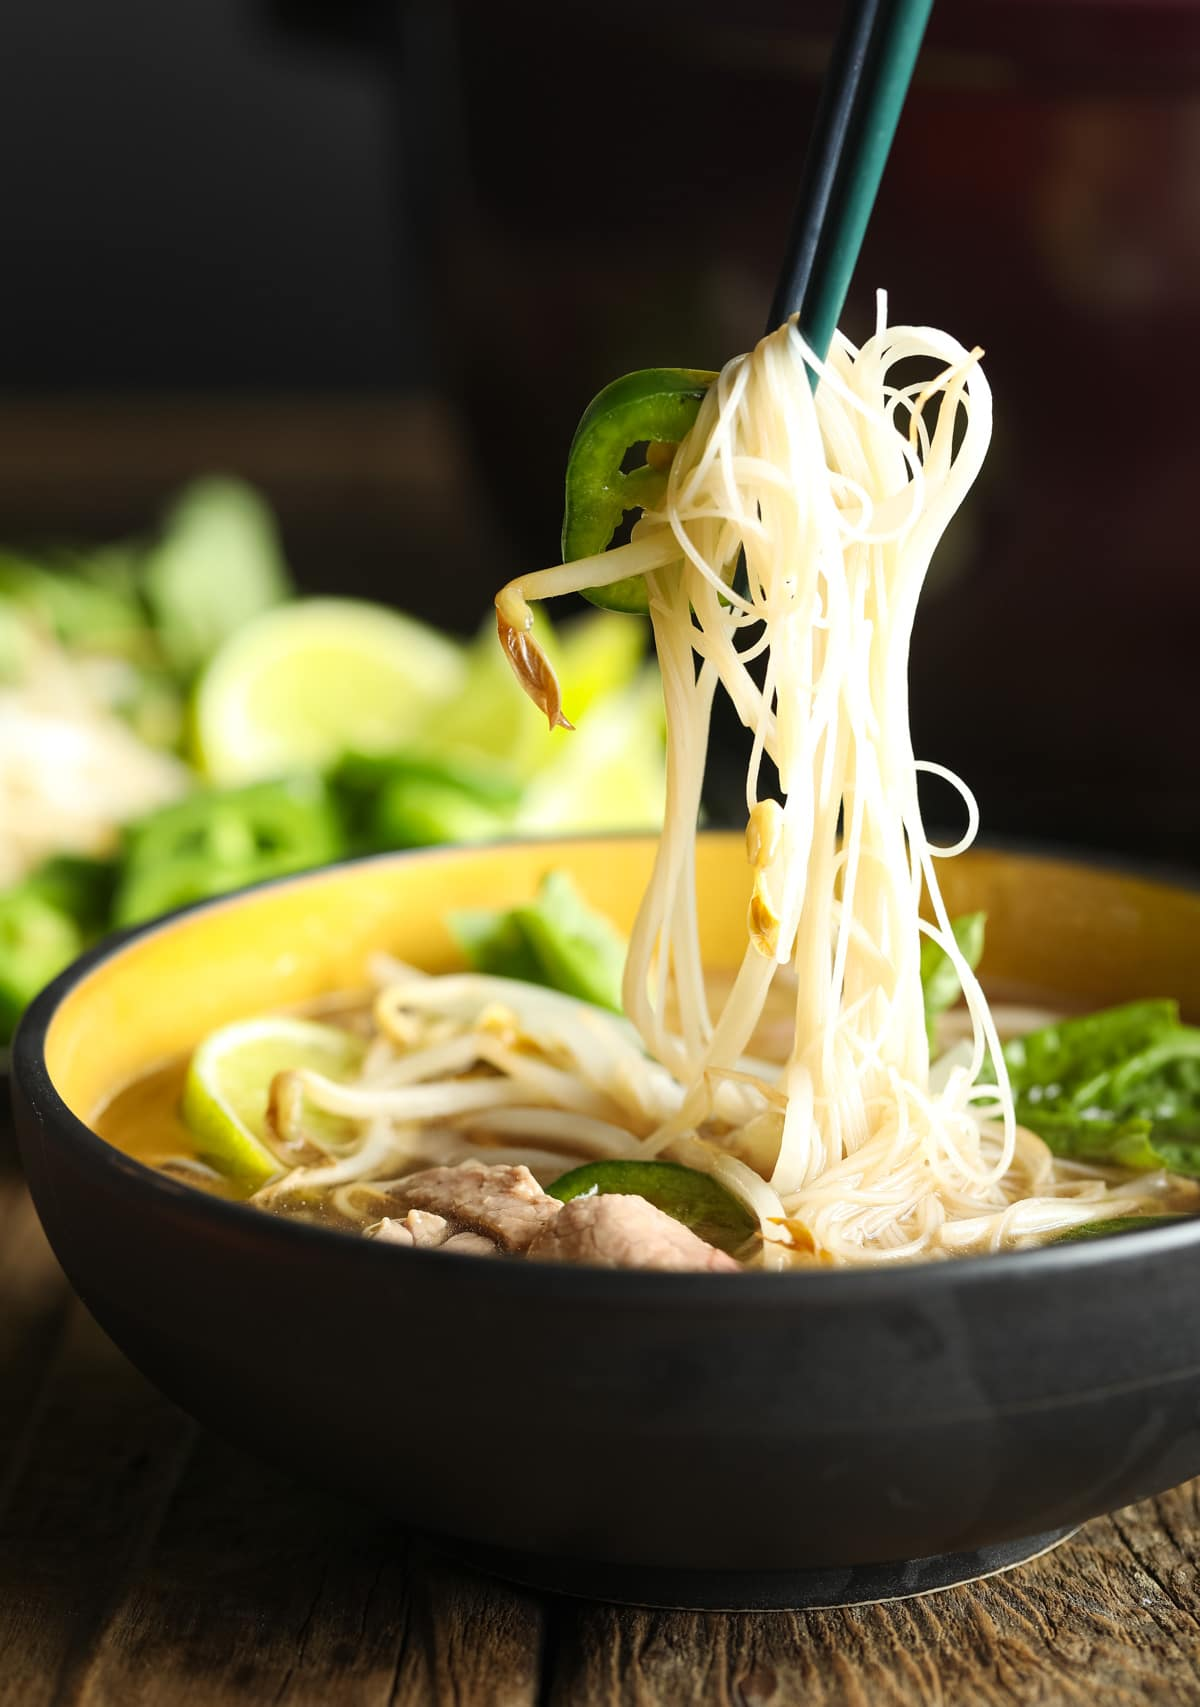 Low Carb Vietnamese Pho Soup Recipe #ASpicyPerspective #whole30 #paleo #lowcarb #keto #Soup